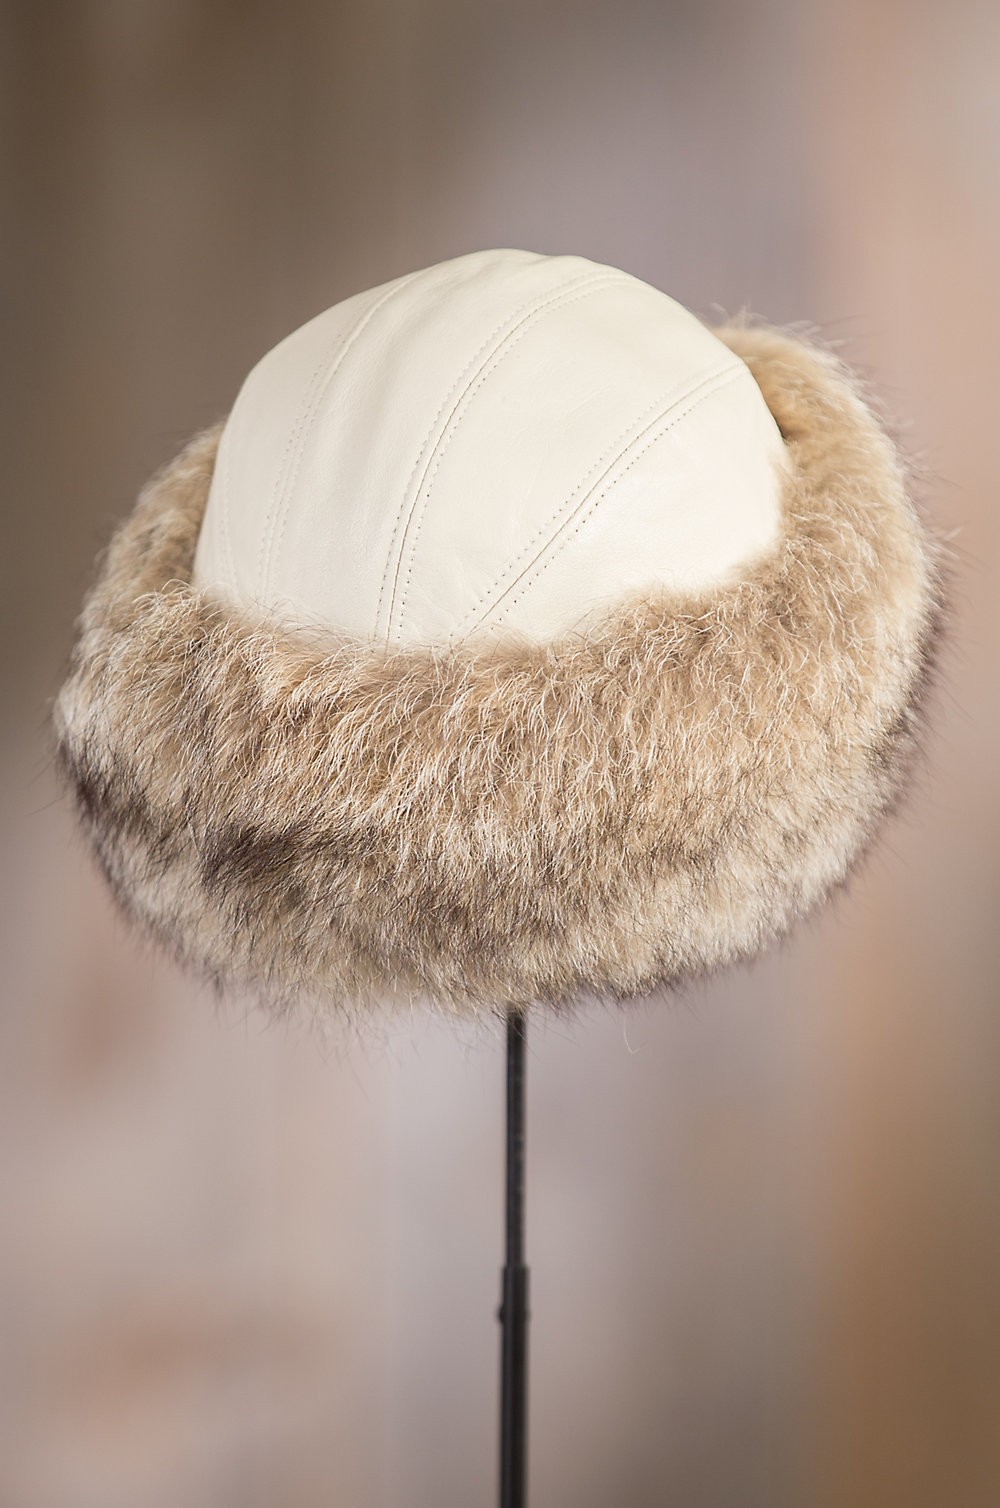 e476cf2e 기획전 [오버랜드] Canadian Coyote Fur Cossack Hat with Lambskin Leather Crown